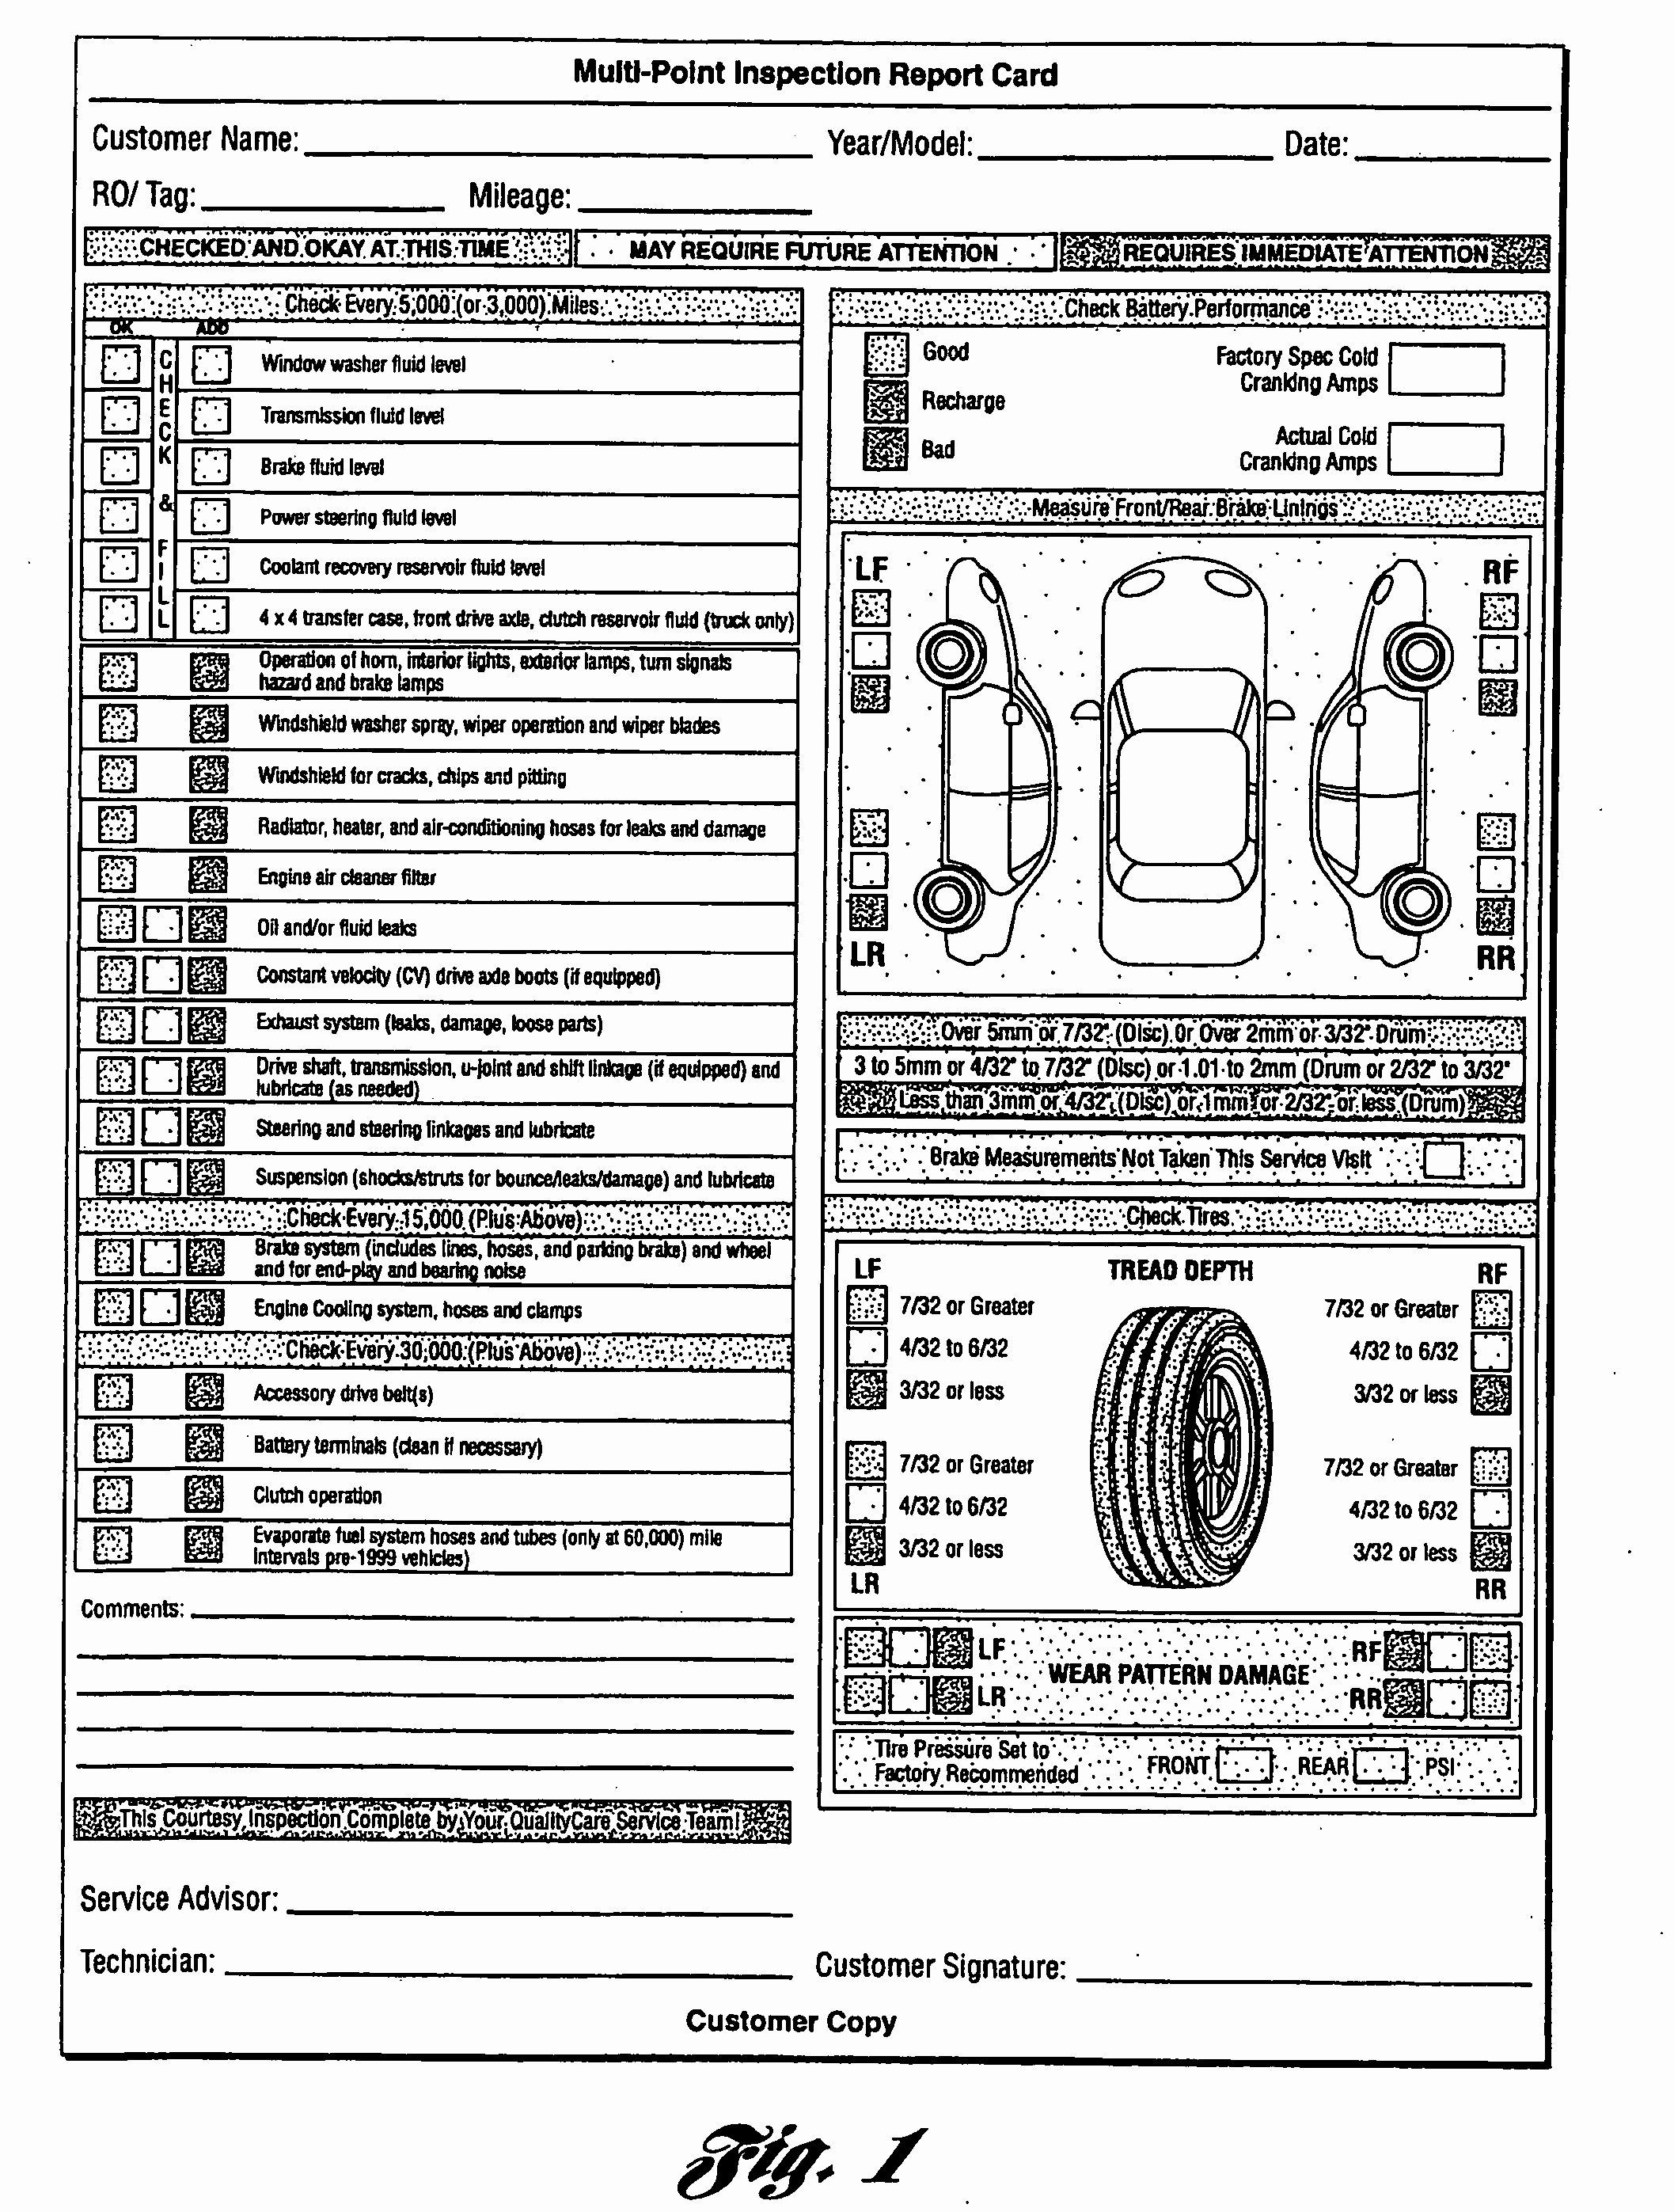 004 Unusual Truck Inspection Form Template High Definition  Commercial Vehicle Maintenance FreeFull